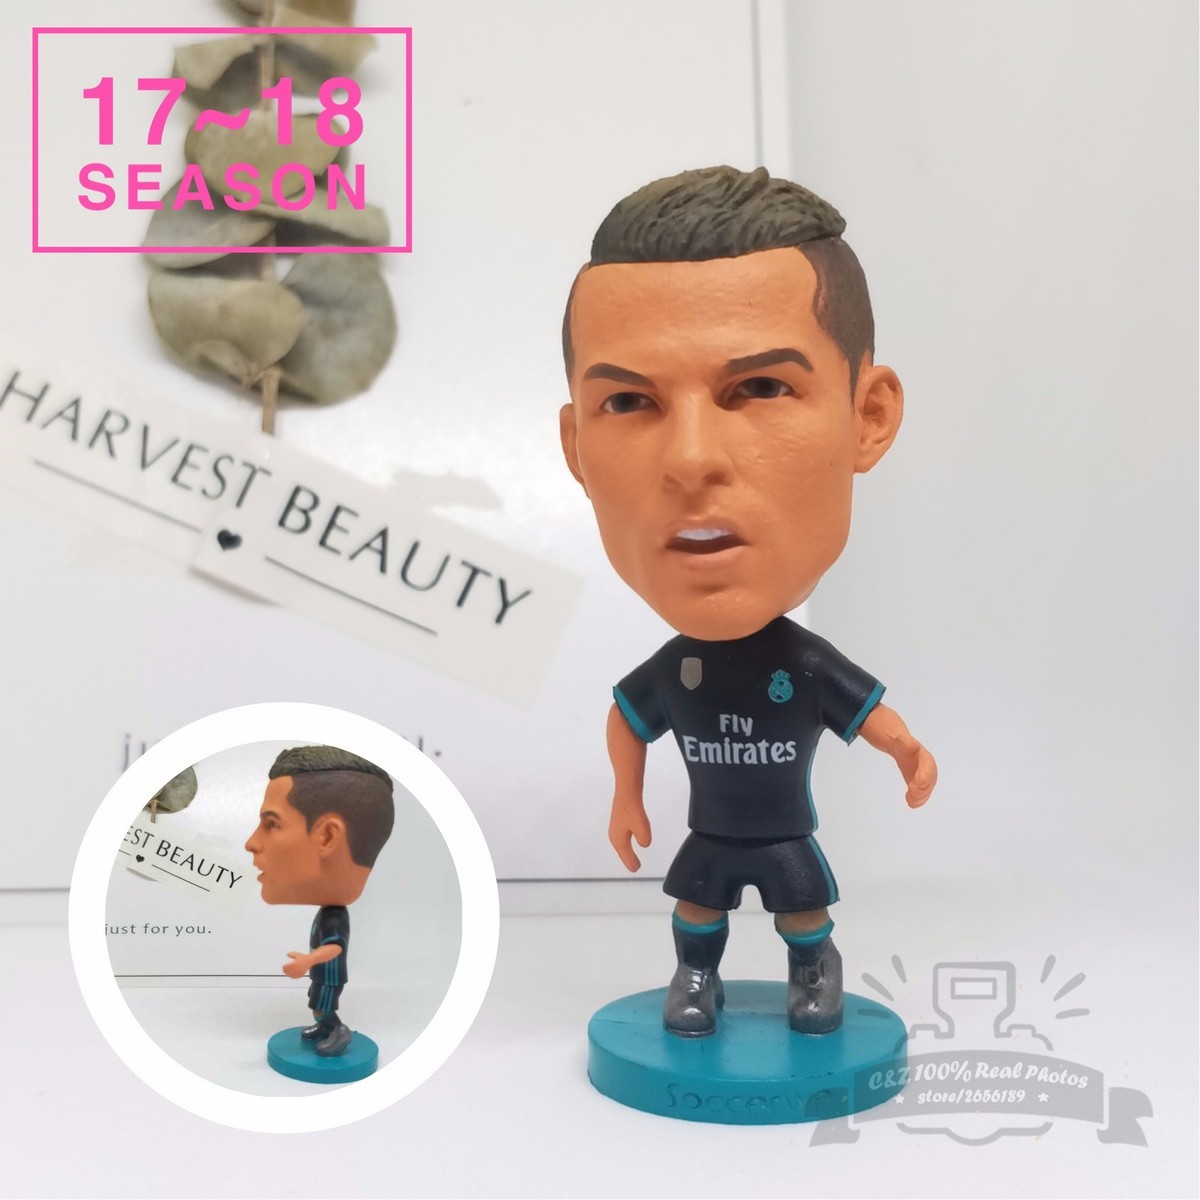 Soccerwe dolls figurine football stars 17-18 7# C Ronaldo Movable joints resin model toy action figure dolls collectible gift kodoto soccerwe roma totti football soccer moveable star collection dolls toy figures